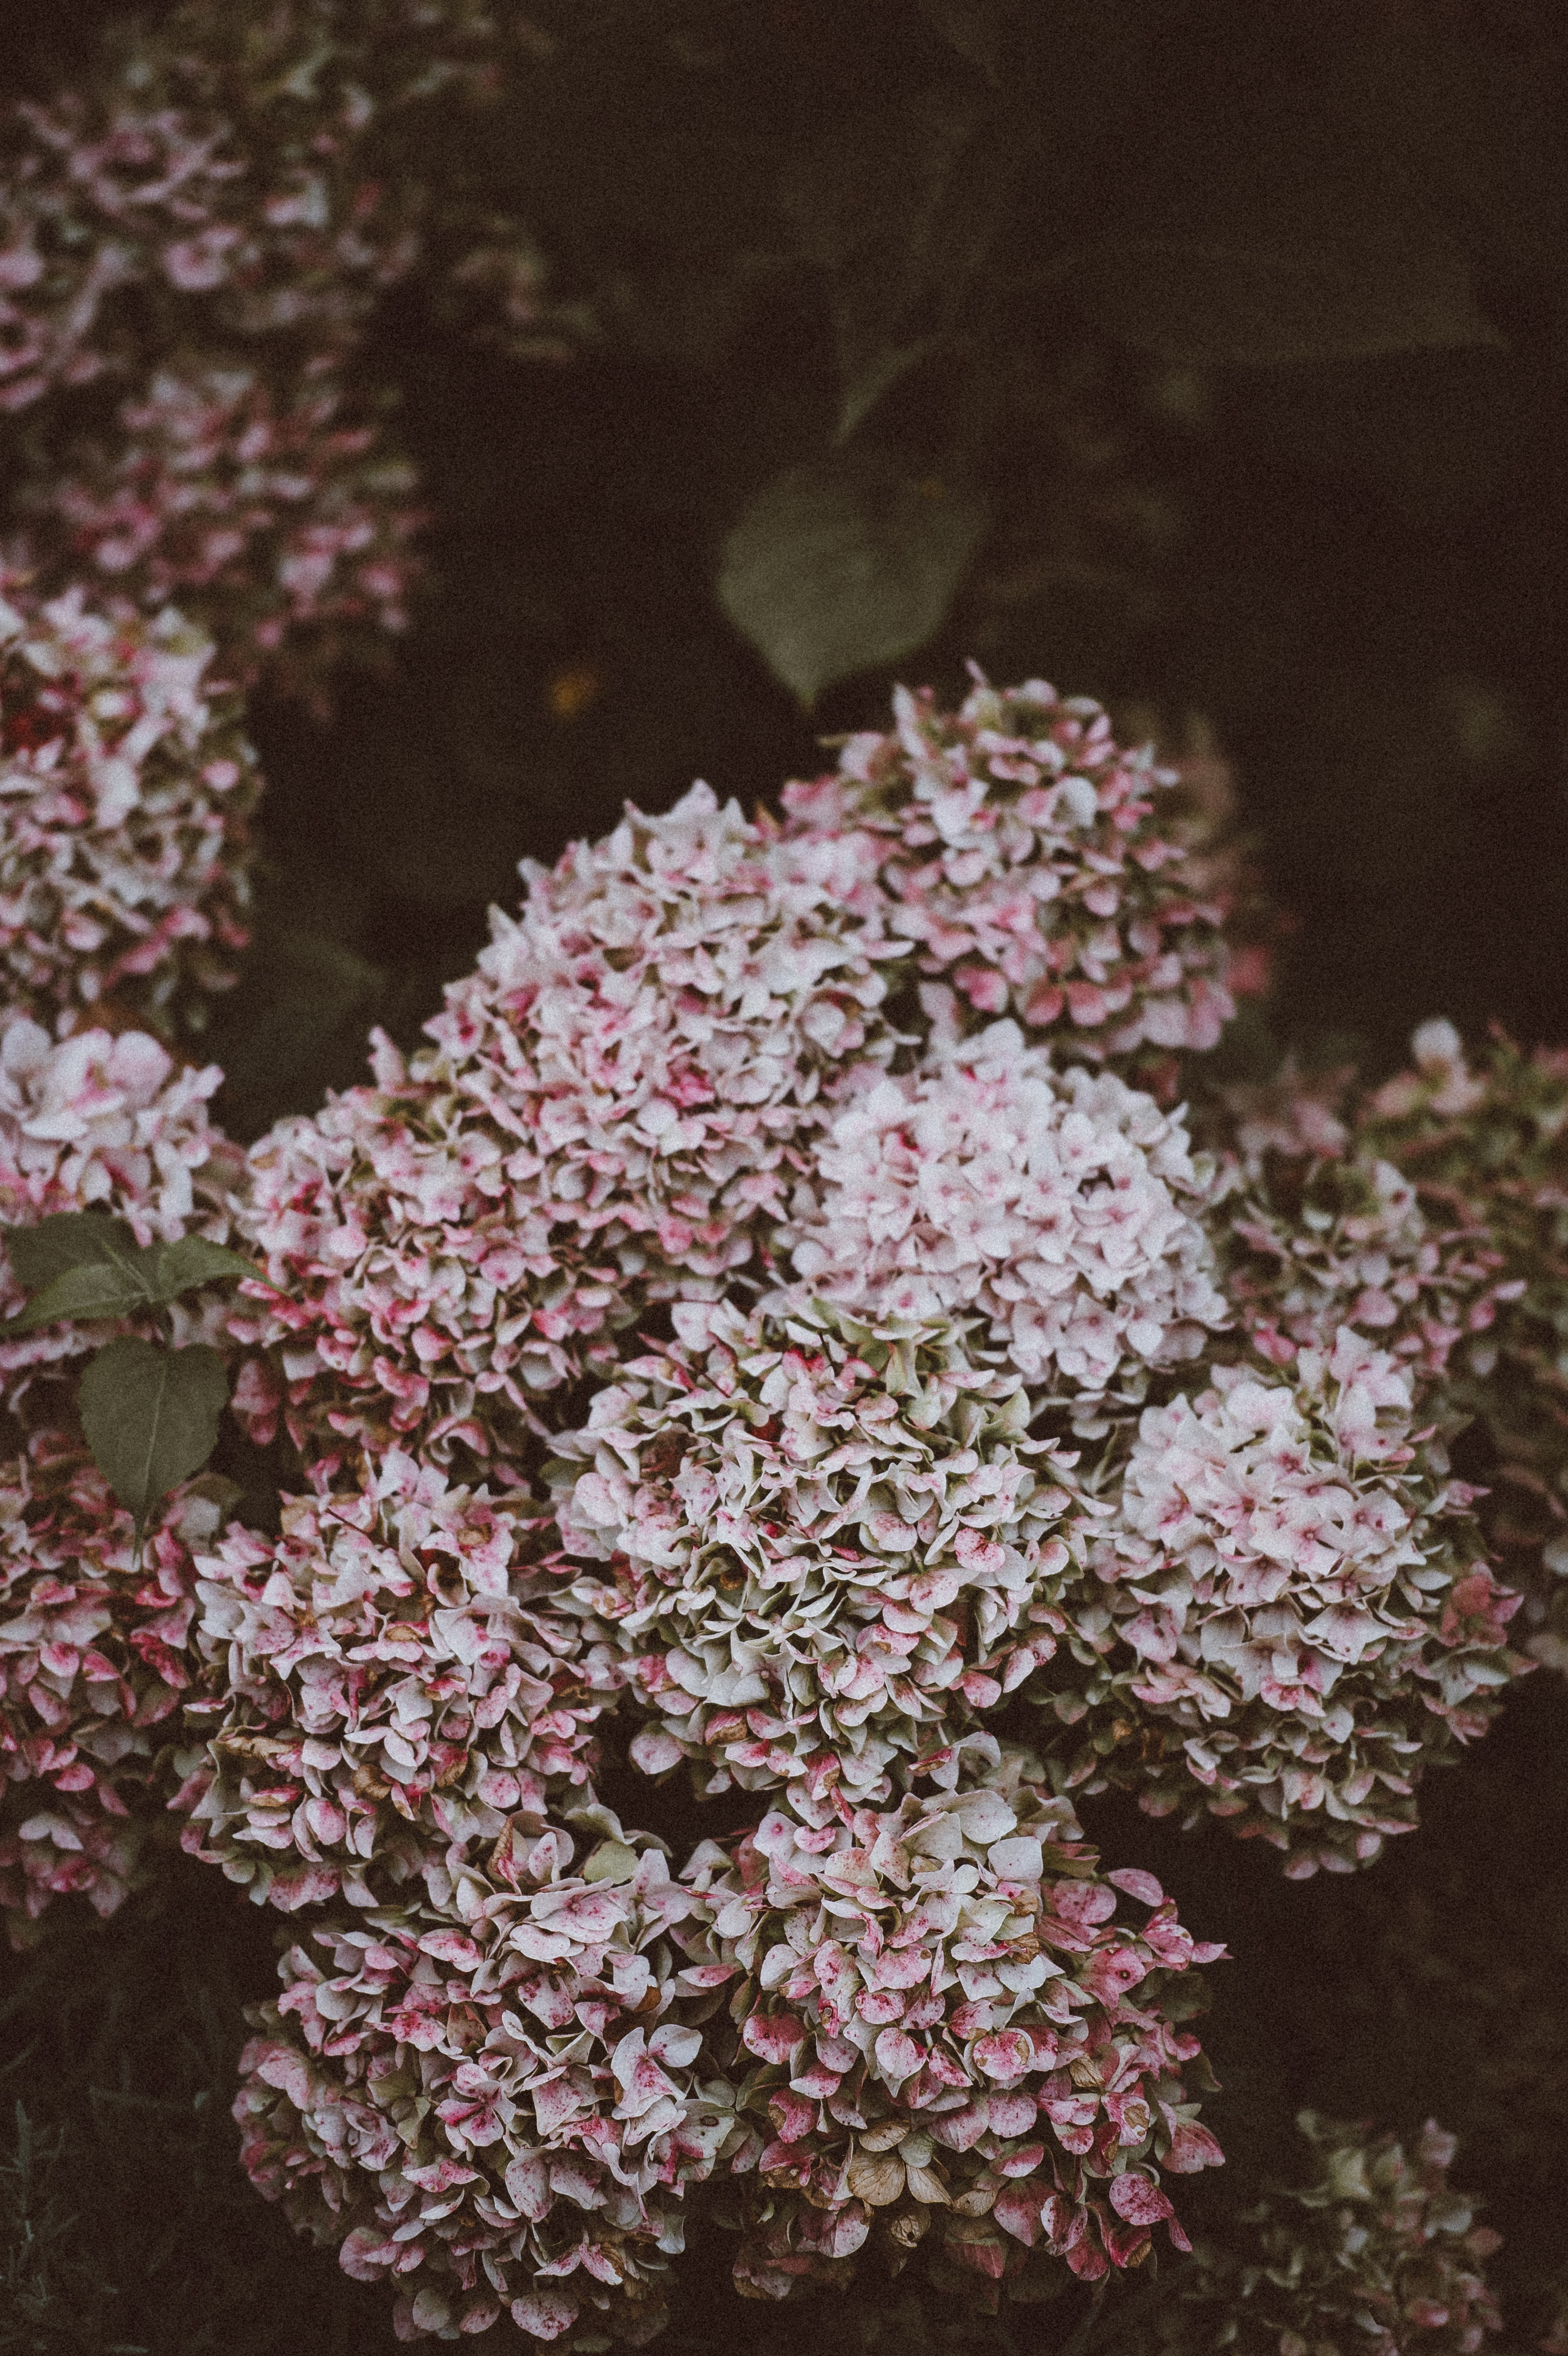 pink-and-white cluster flowers